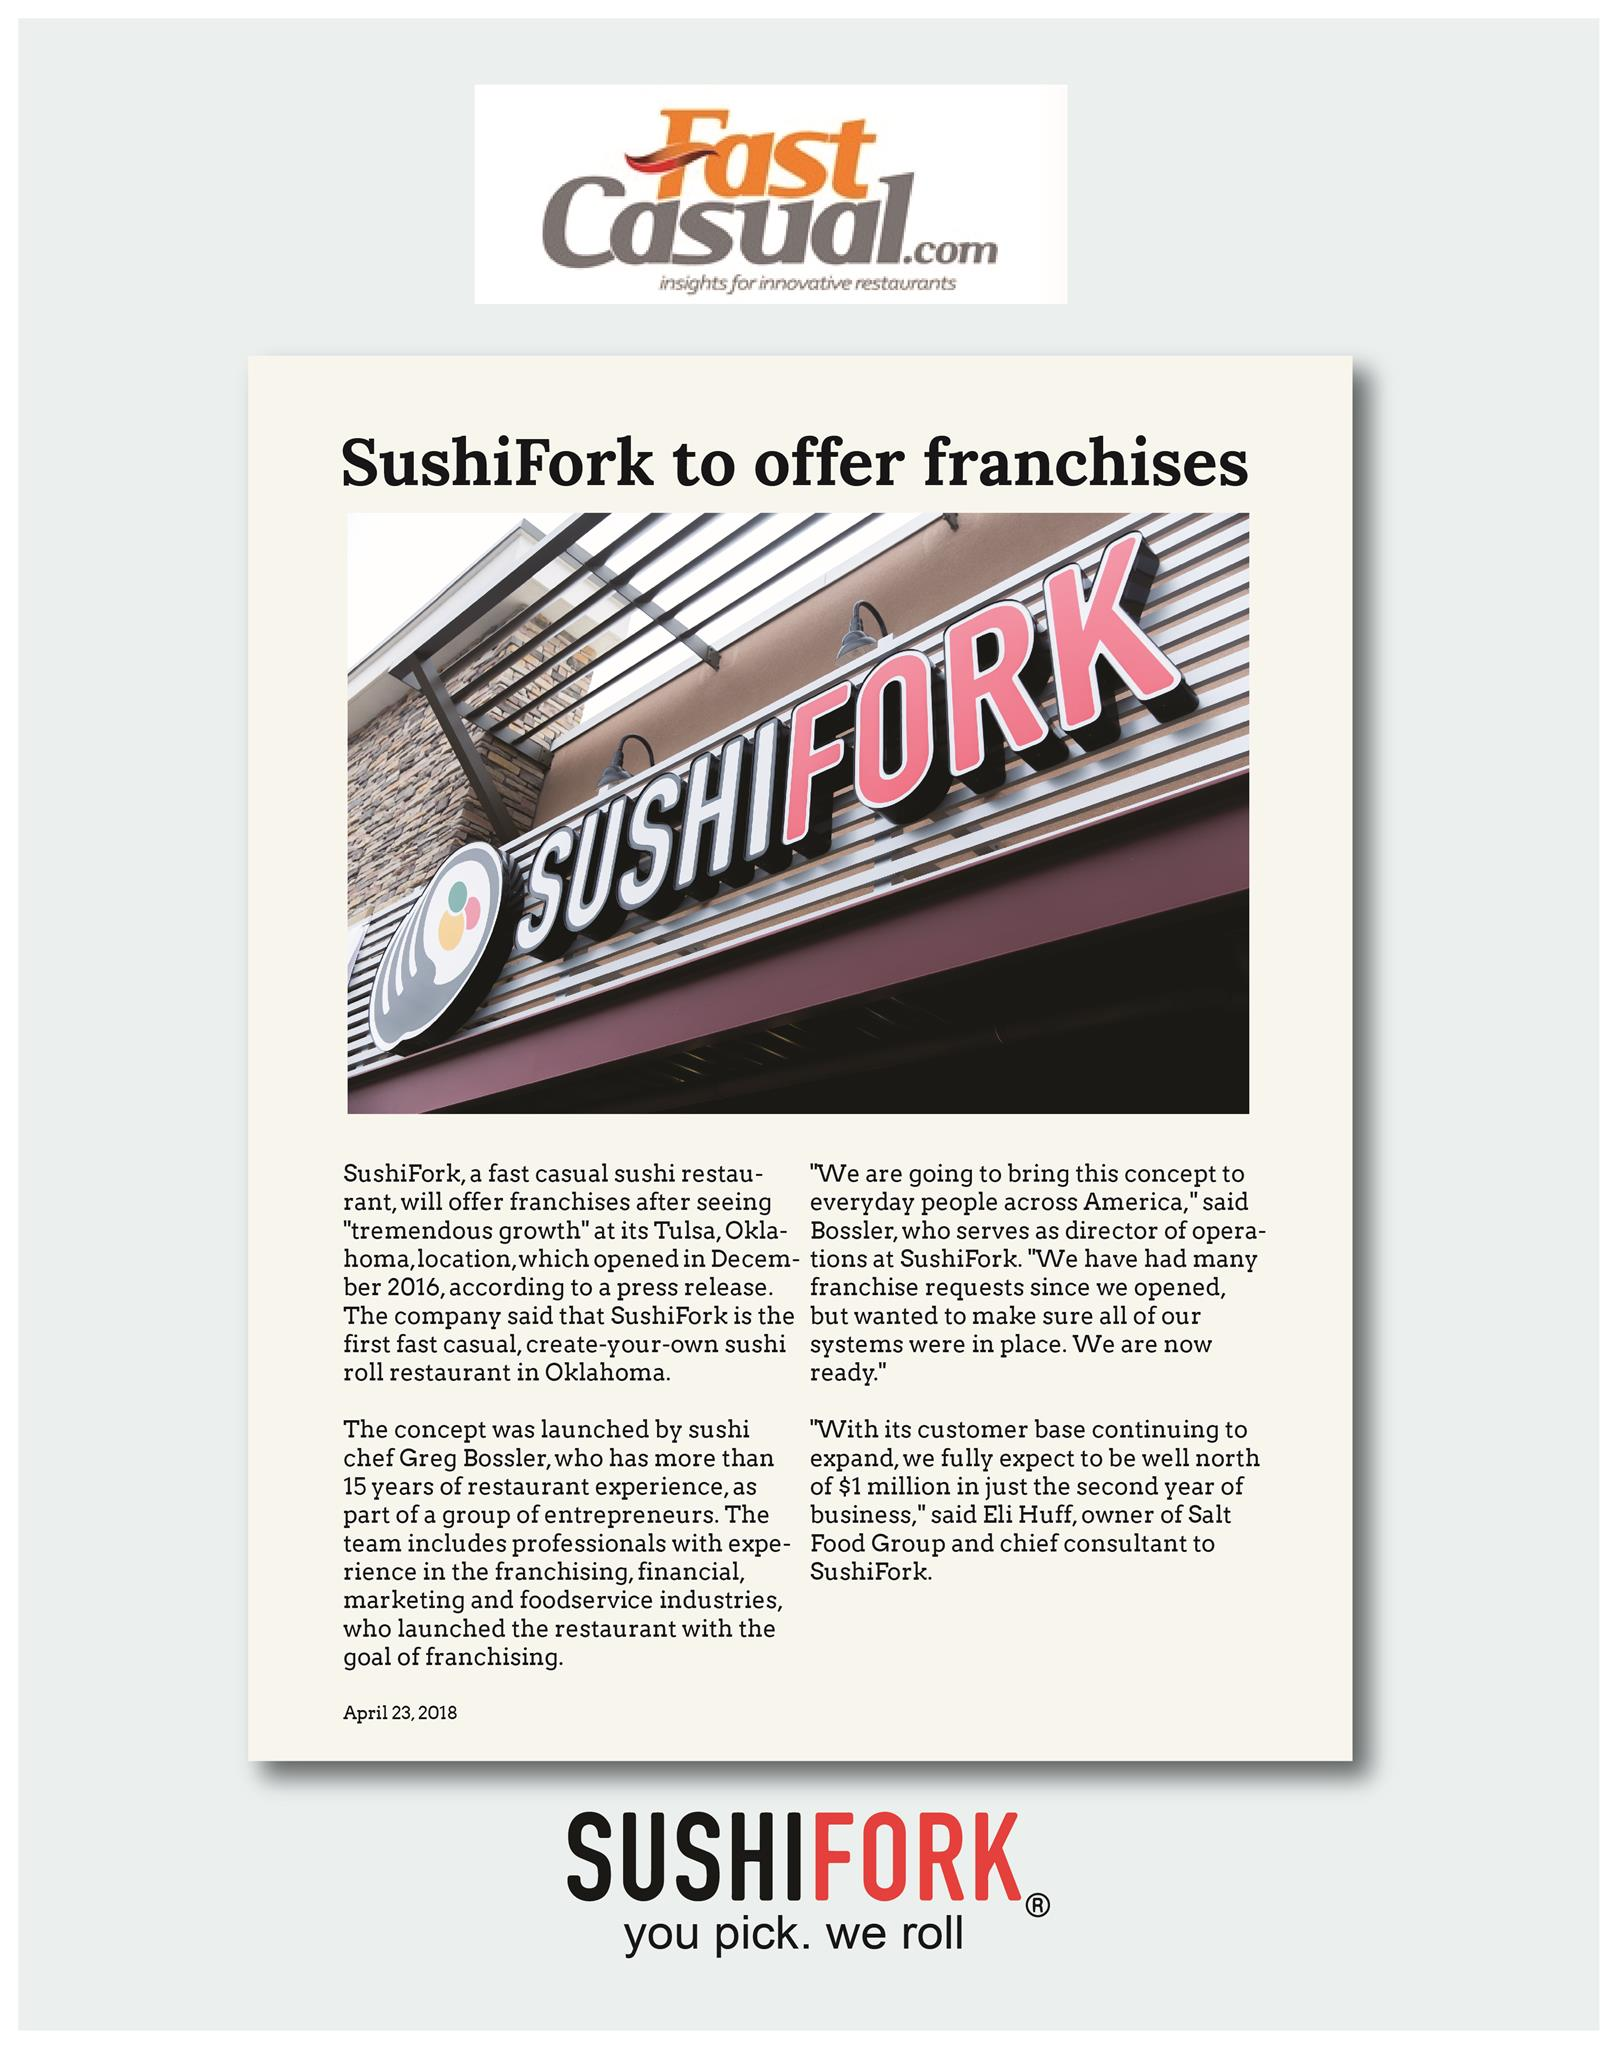 SushiFork to Offer Franchise - Fast Casual